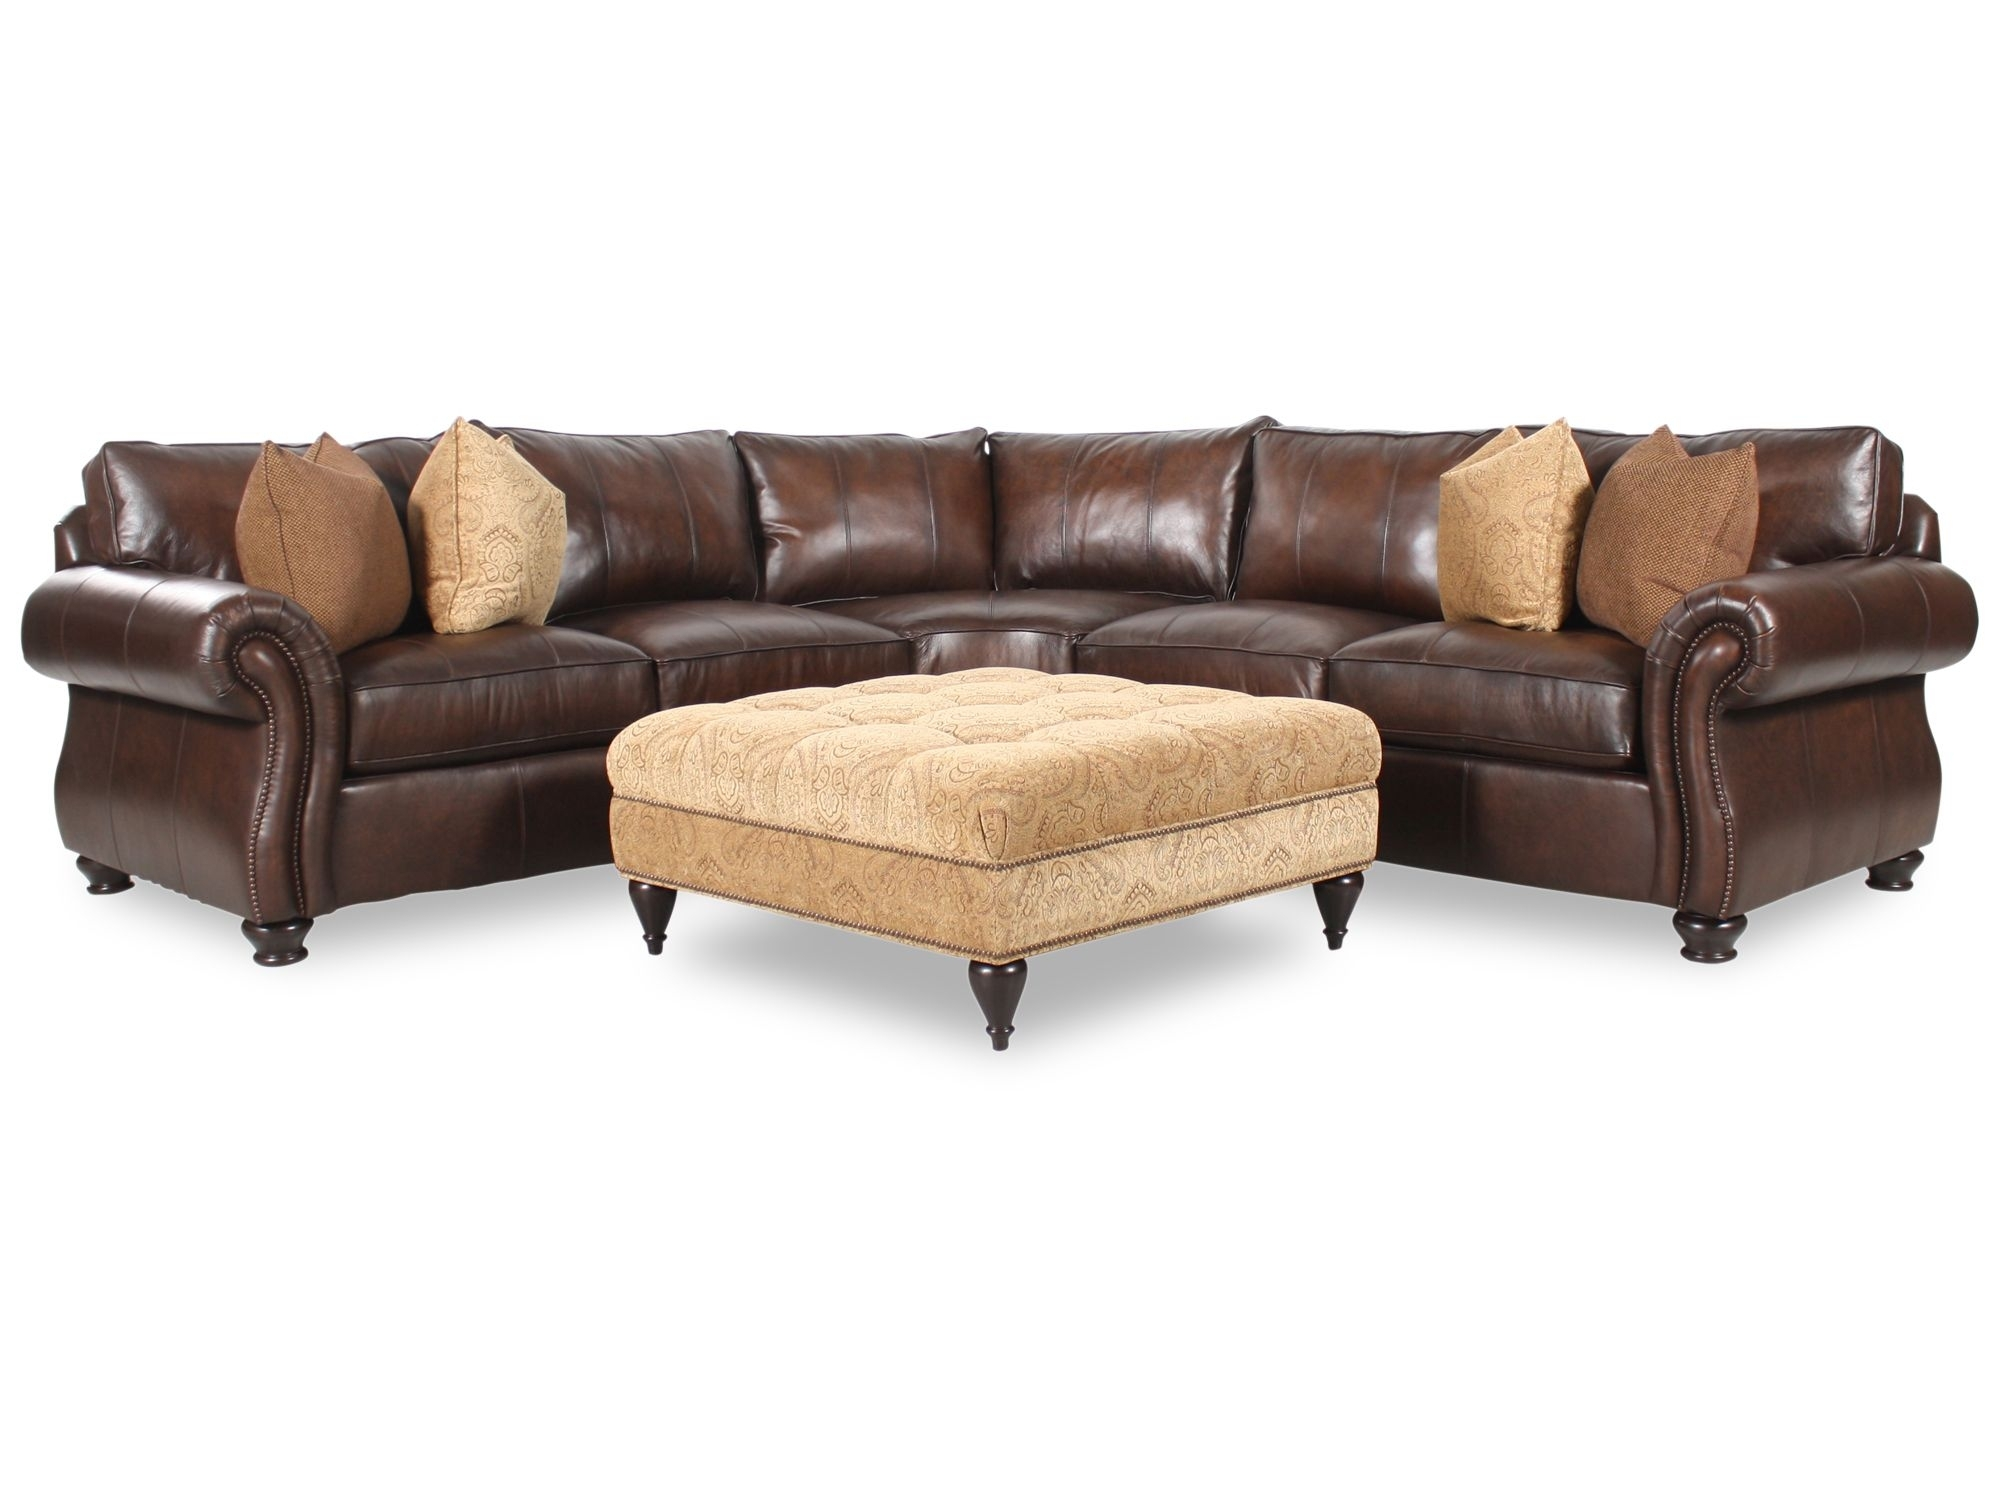 Furniture : Brown Leather Couch In Living Room 2 Seater Red Leather Within Oakville Sectional Sofas (View 5 of 10)